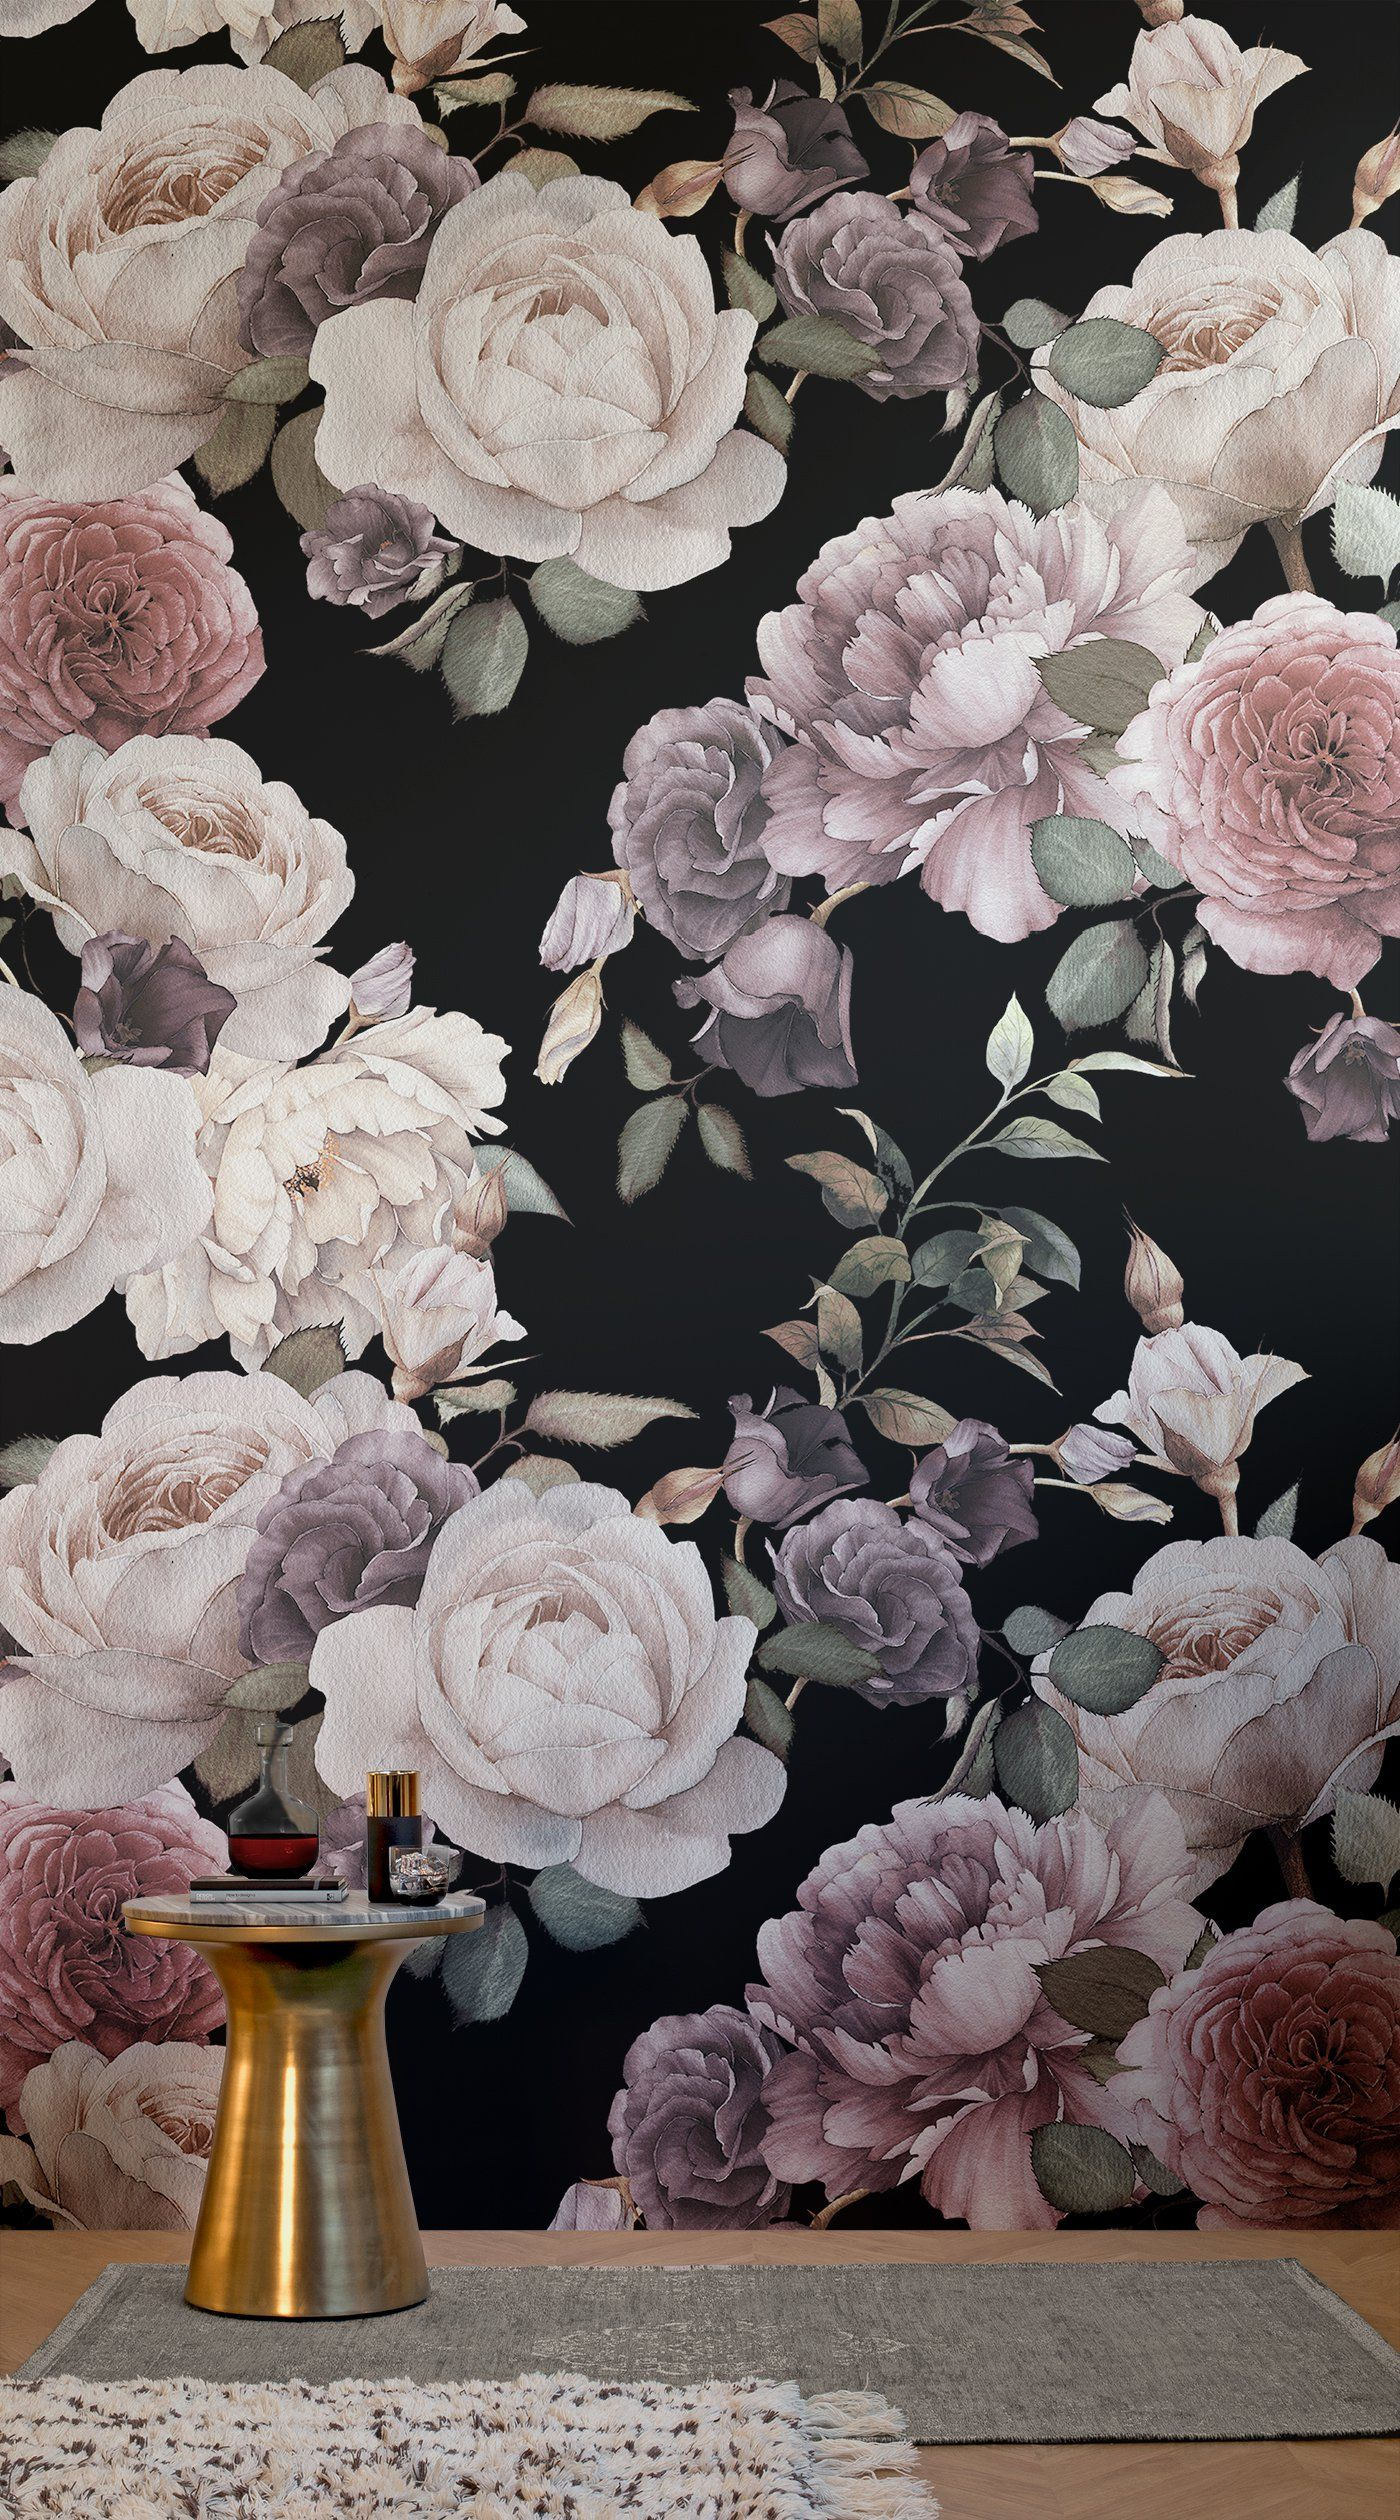 8 Dark Floral Wallpapers To Create A Striking Space